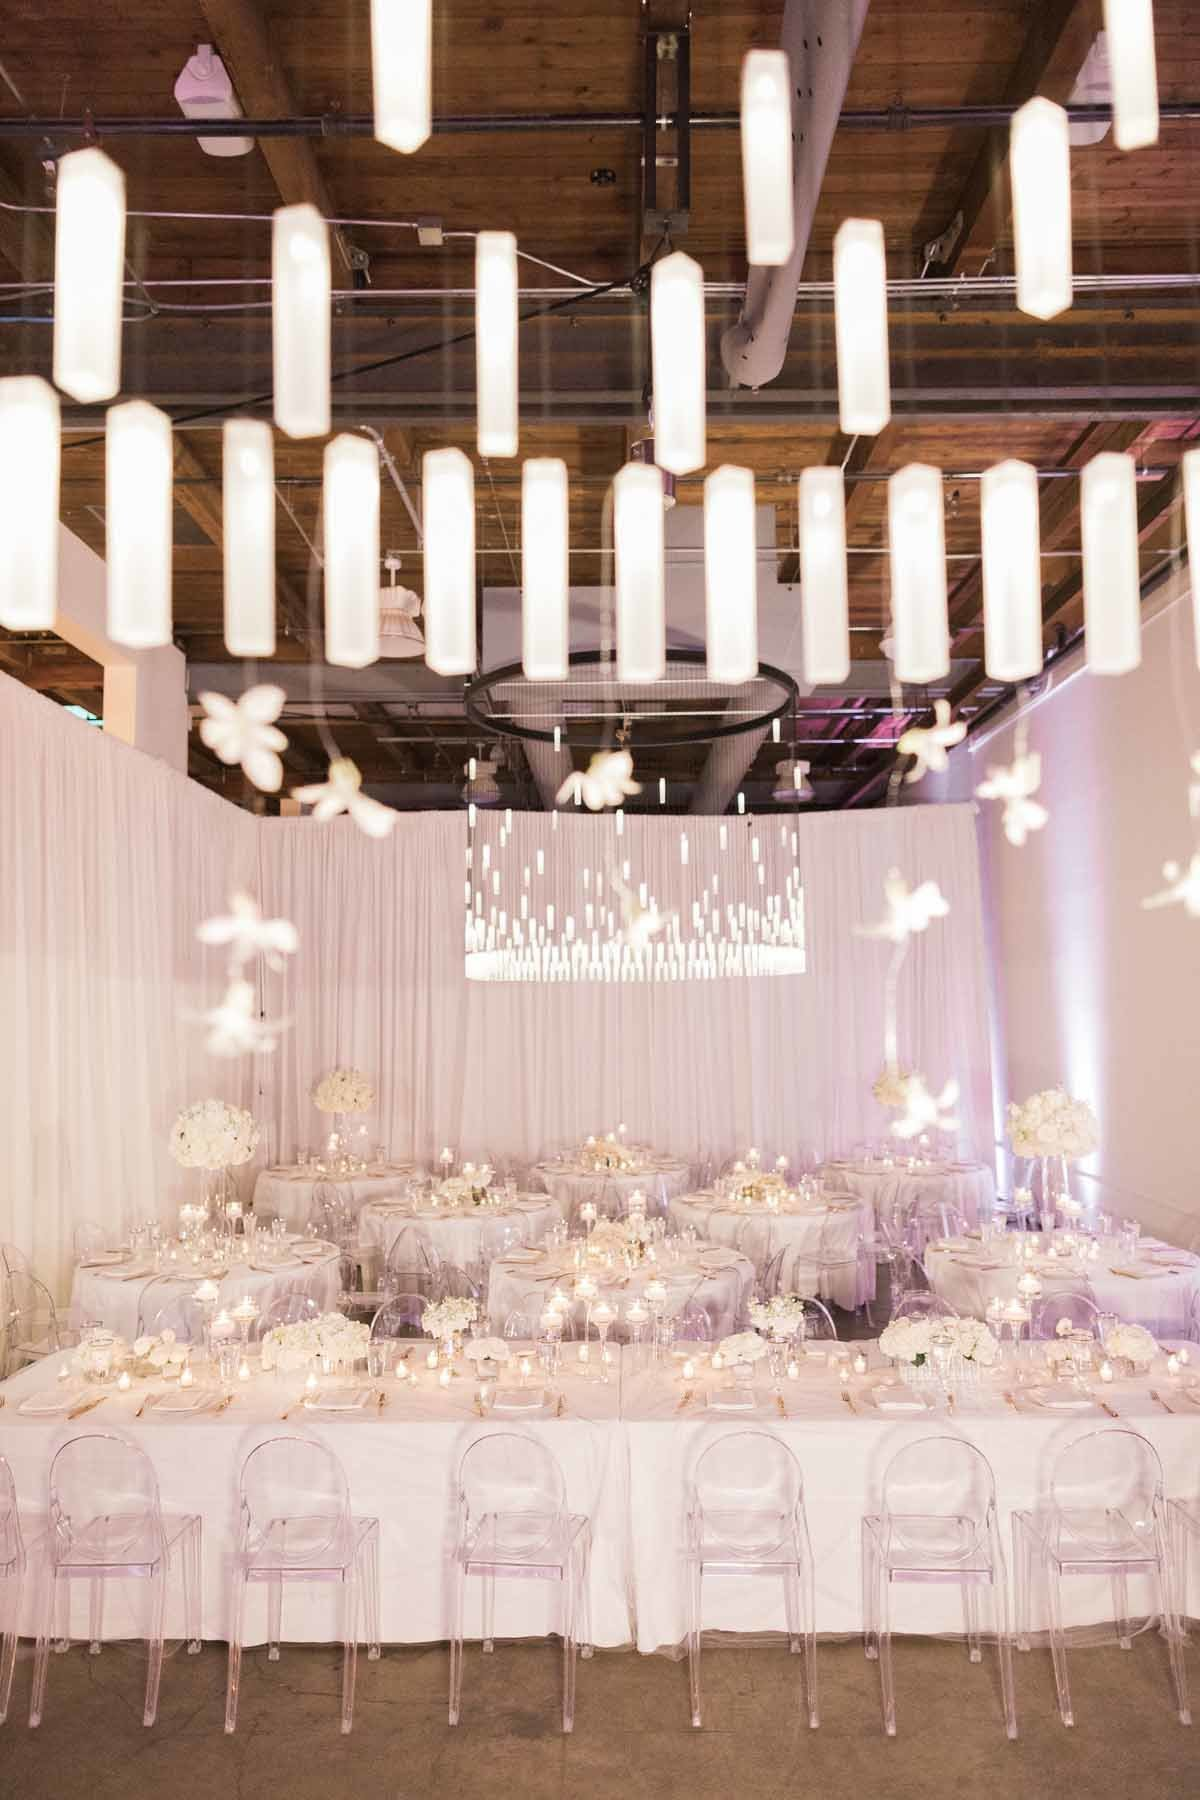 Chandelier with delicate white orchids hanging from it suspended over head table